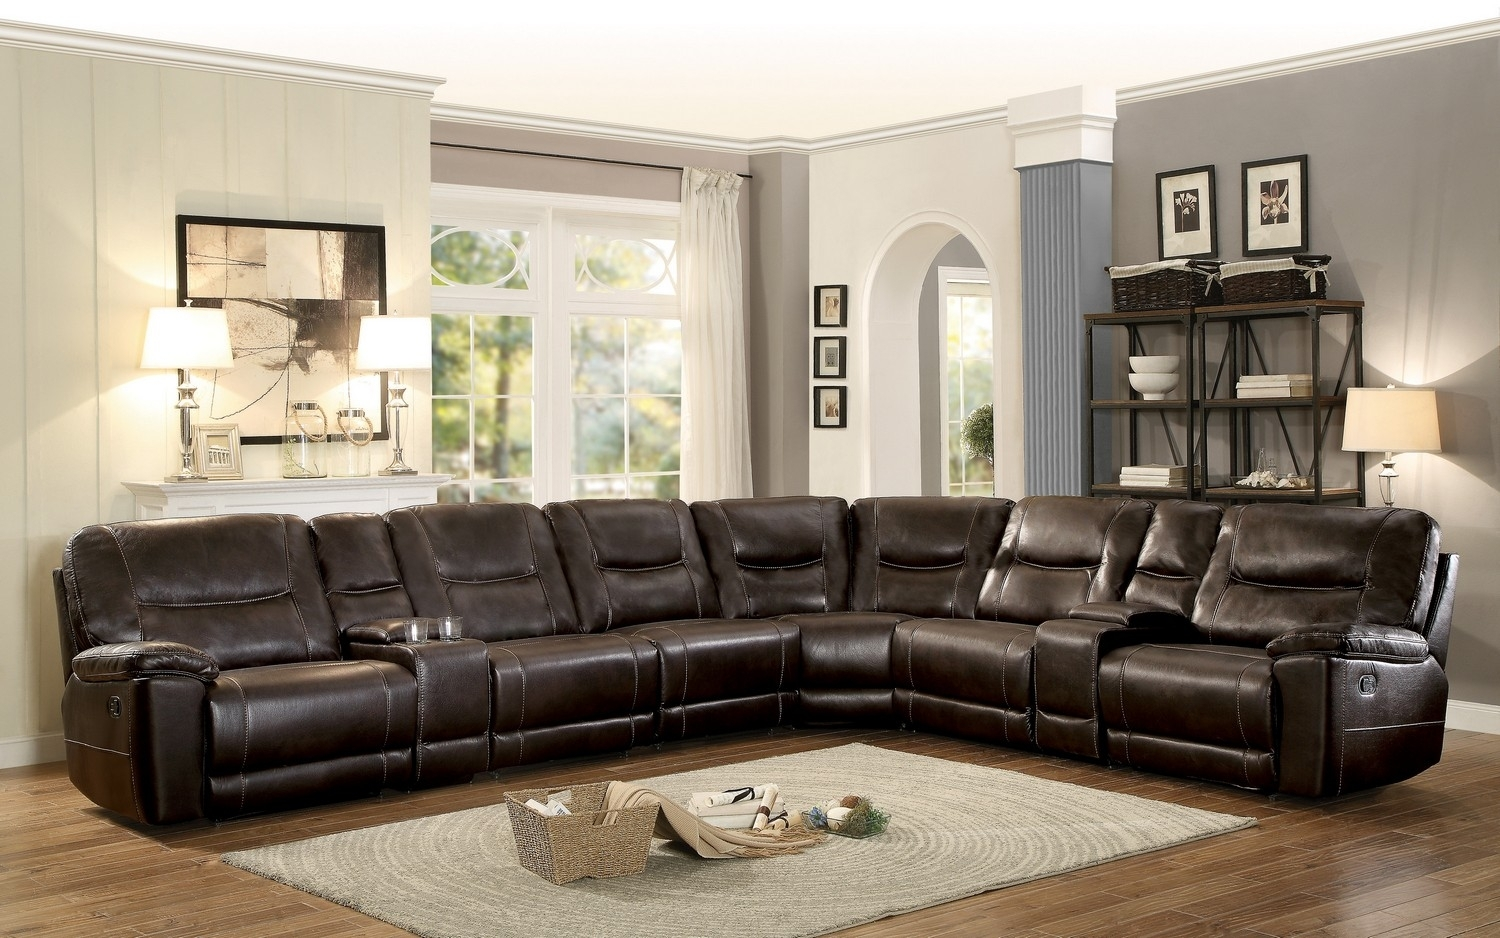 Homelegance Columbus Reclining Sectional Sofa Set A – Breathable With Regard To Reclining Sectional Sofas (Image 9 of 10)